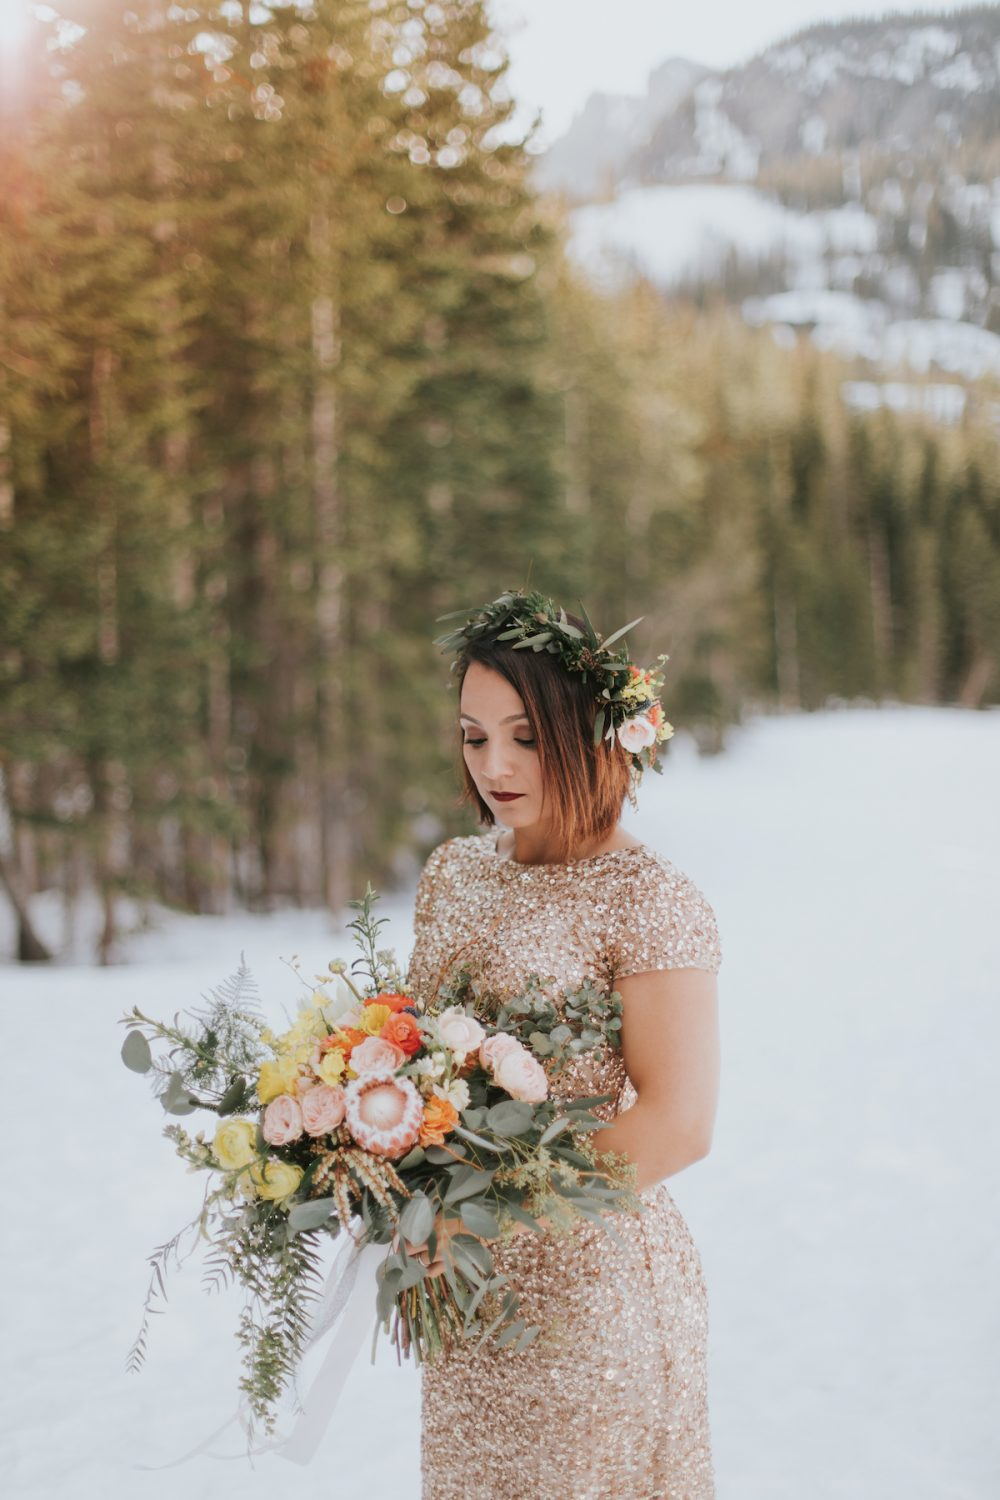 Wedding Florist Bride Photo